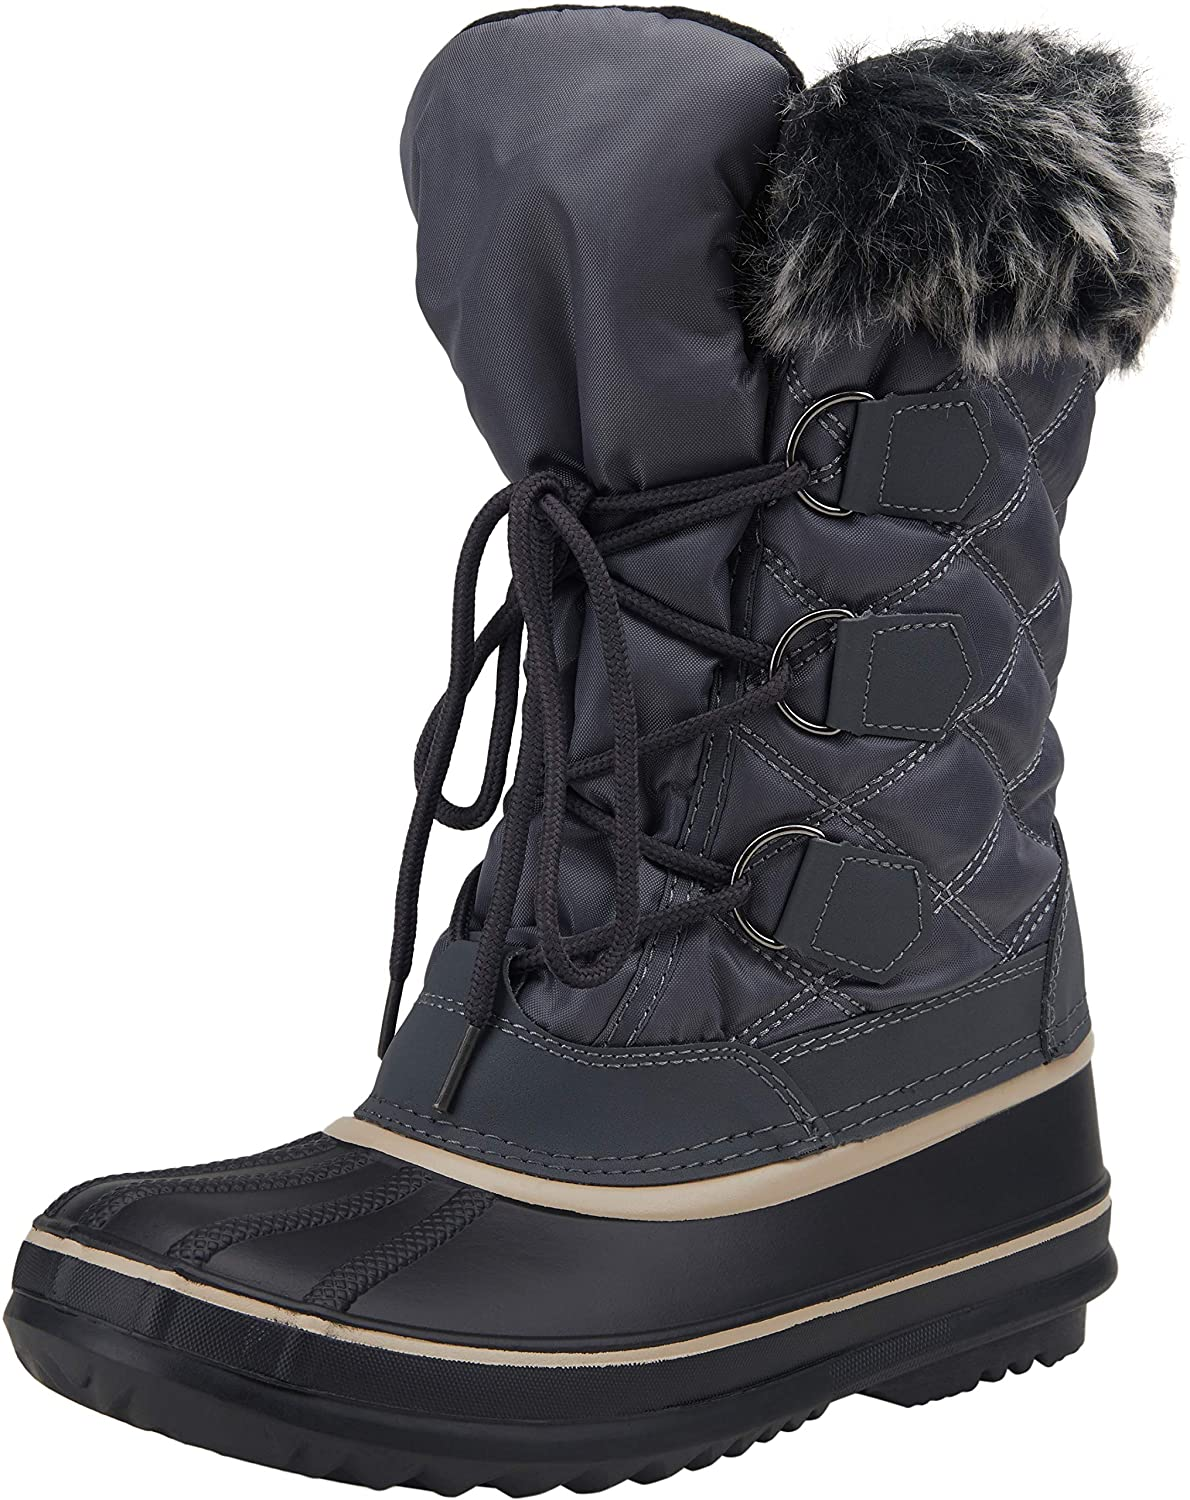 VEPOSE Womens Snow Boots Waterproof Mid Calf Lace Up Warm Winter Booties